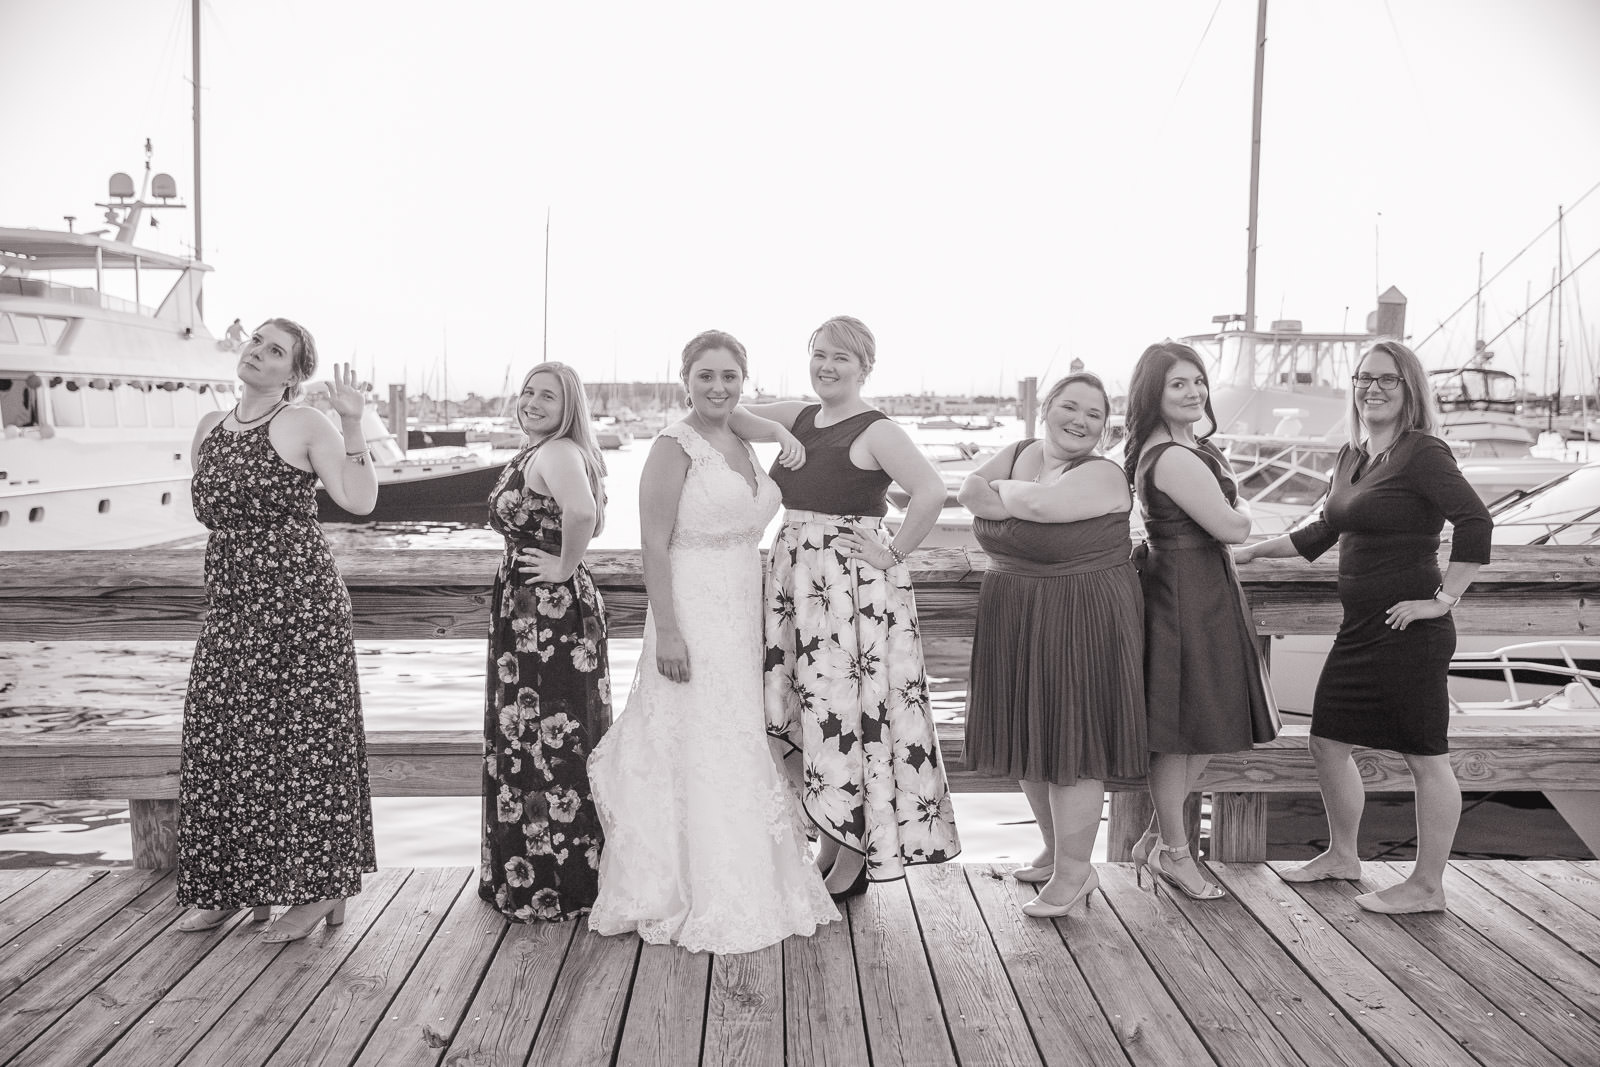 Newport Harbor Hotel, Newport harbor hotel and Marina, Newport, rhode island, beach wedding, harbor wedding, coastal wedding, wedding, Tracy jenkins photography, RI wedding photographer, Rhode Island wedding photographer, girls, bridal party